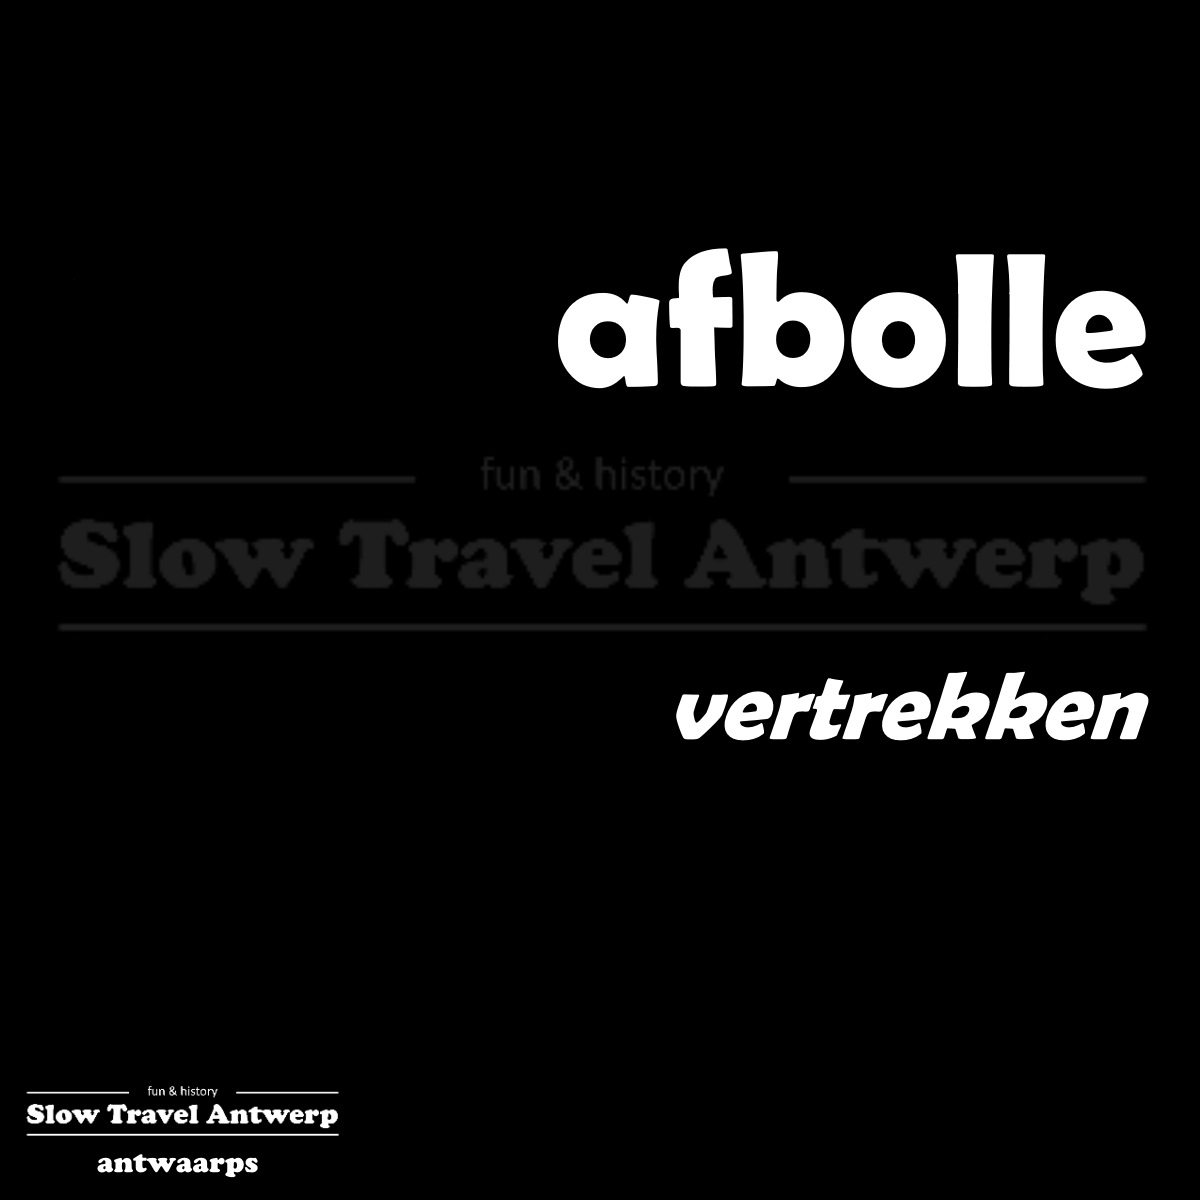 afbolle – vertrekken – to leave